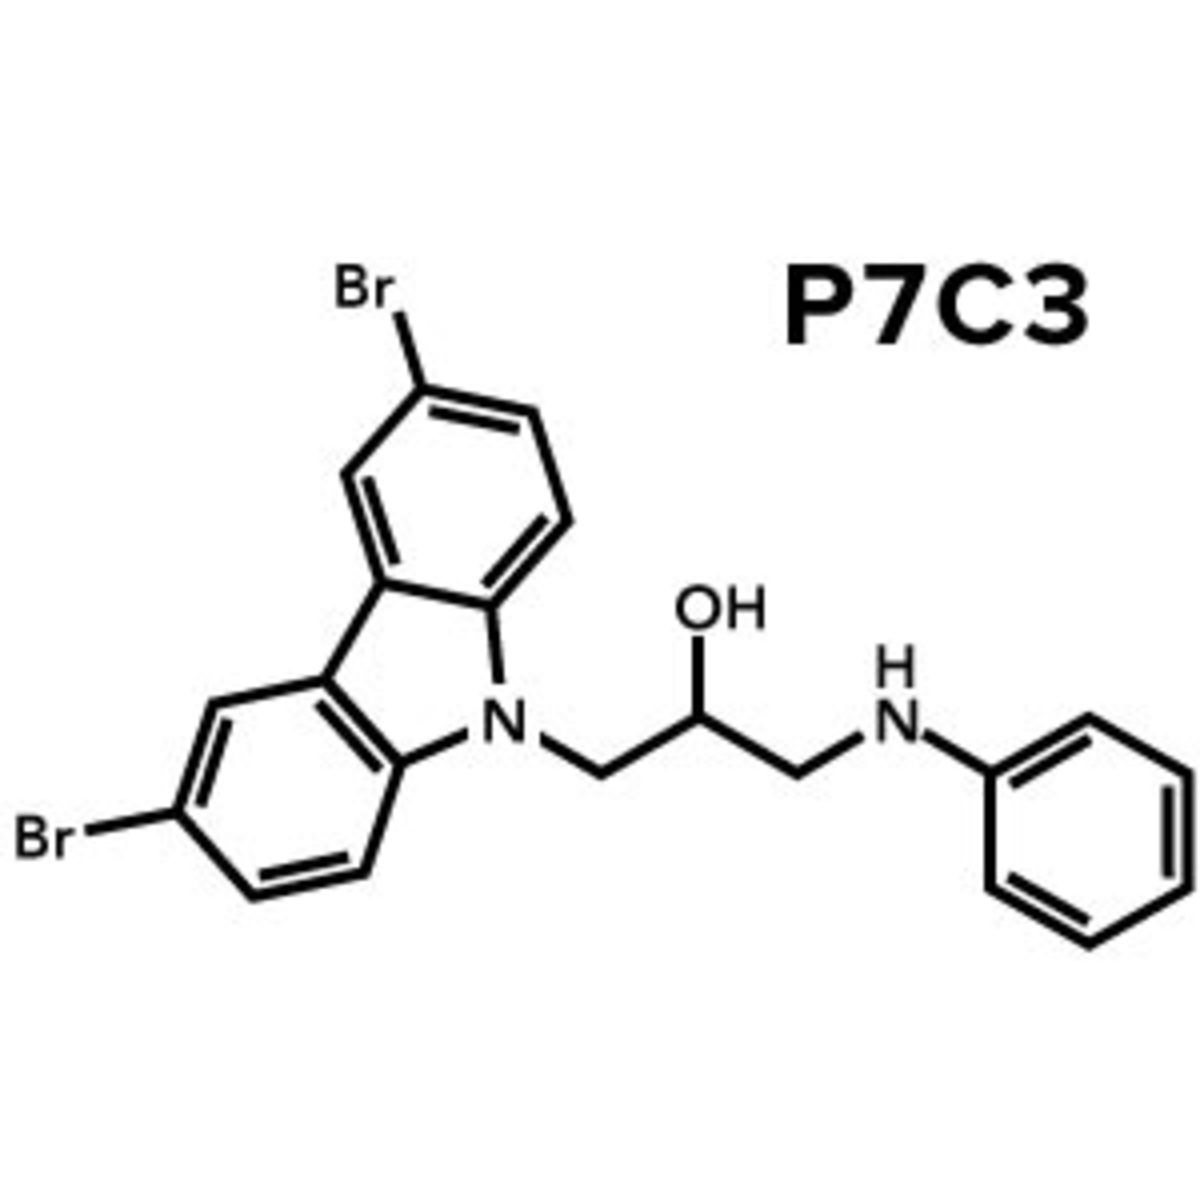 P7C3 compound chemical structure